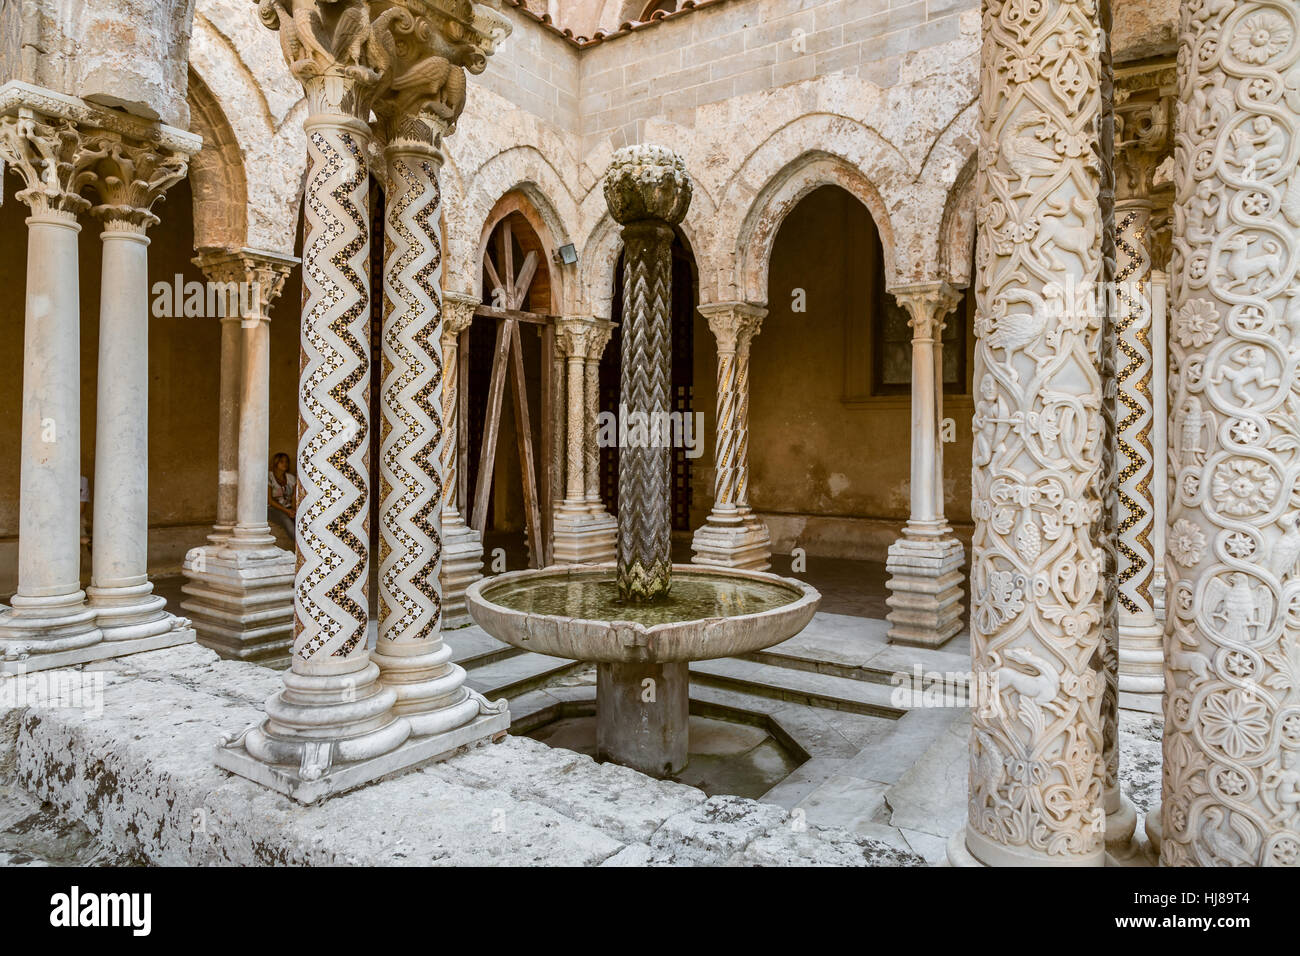 Cloître de la cathédrale de Monreale, Sicile Photo Stock